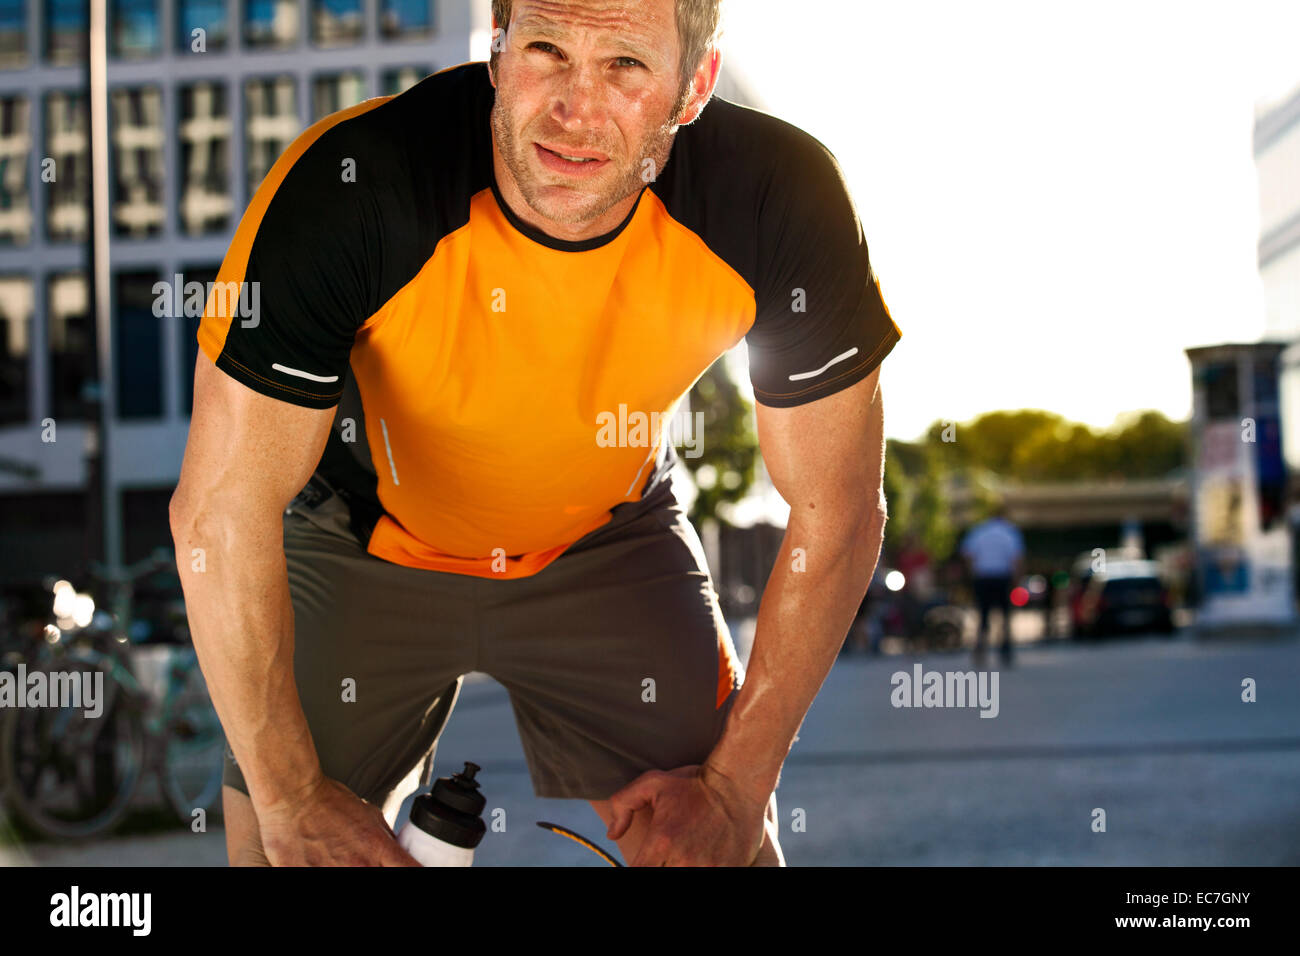 Athletic man outdoors - Stock Image